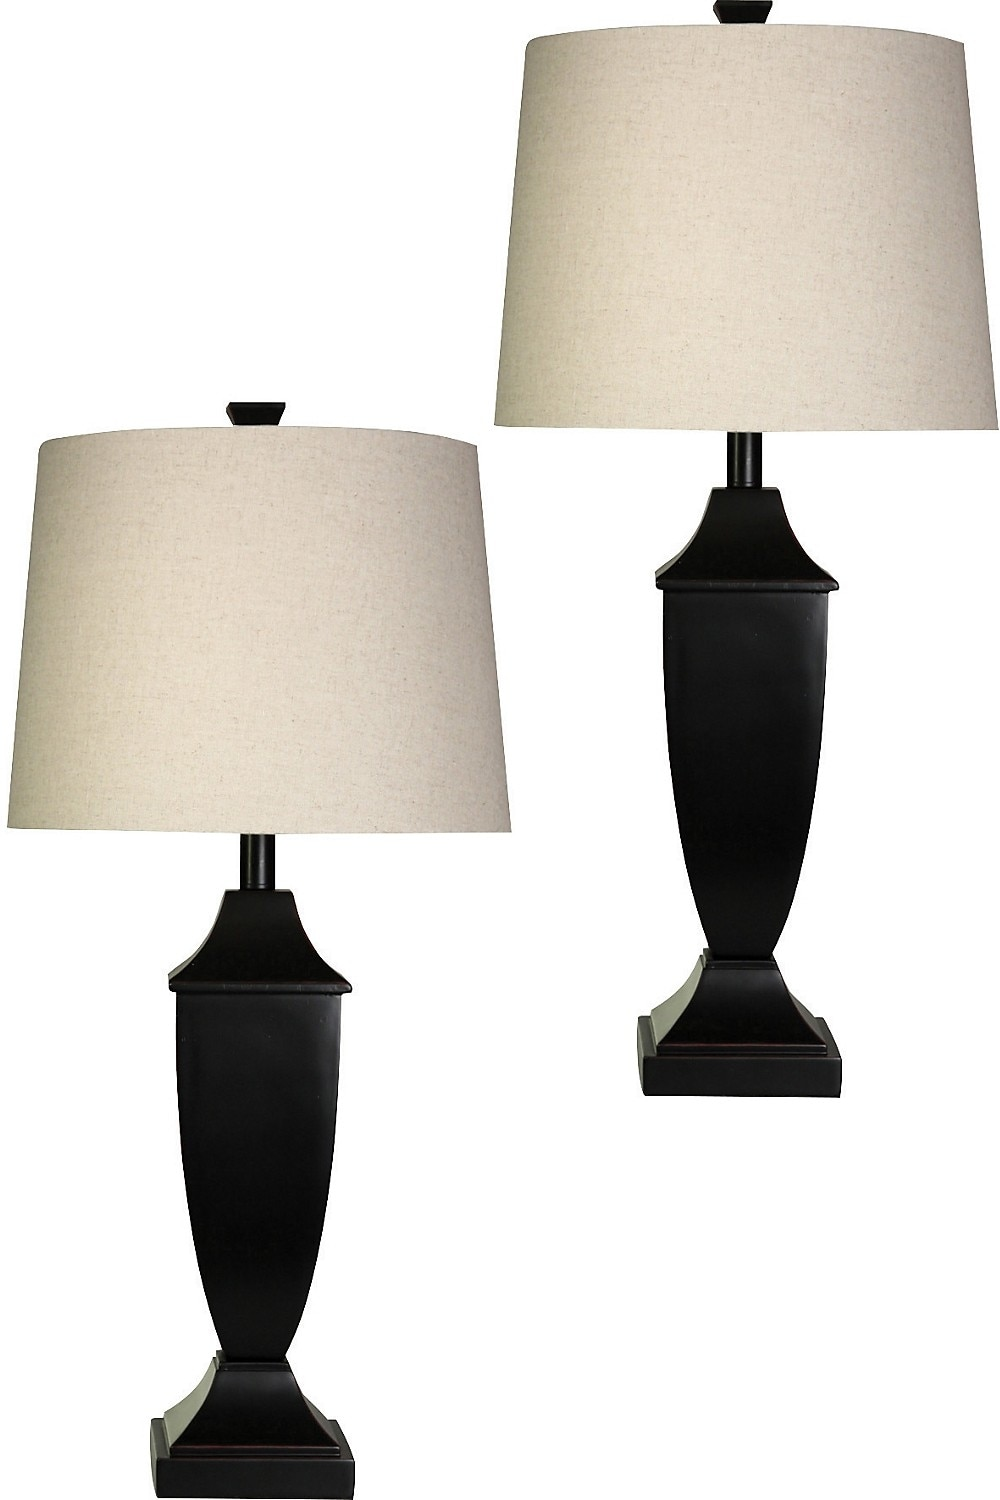 Home Accessories - Bronze Finish 2-Piece Table Lamp Set with Linen Shade